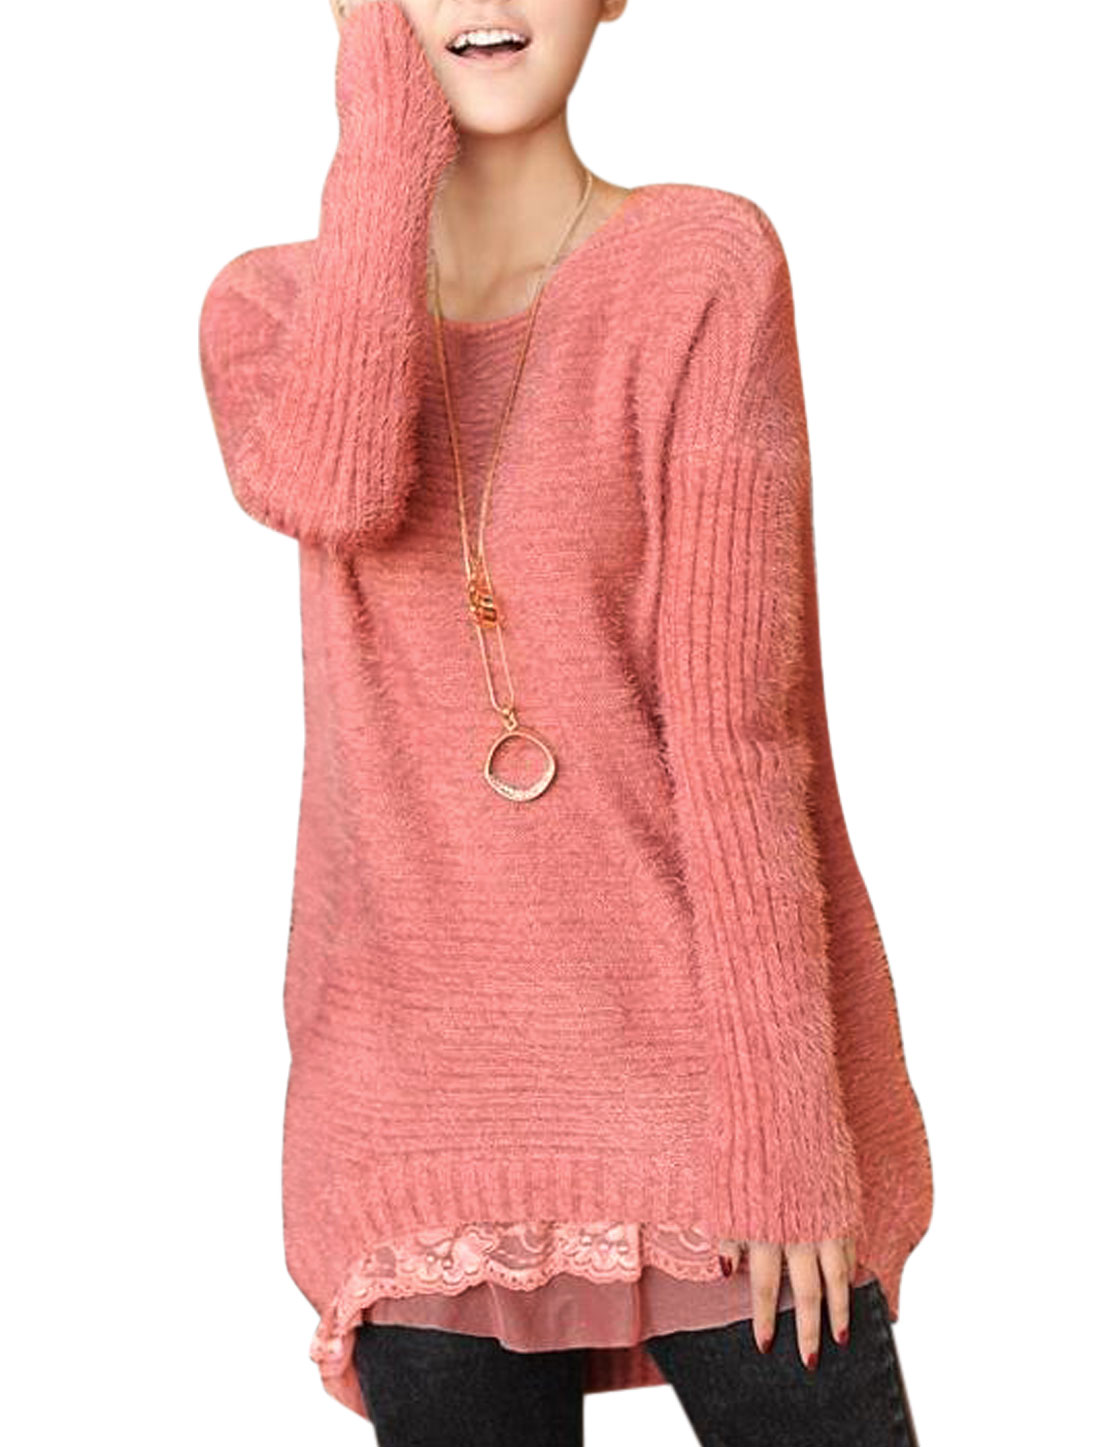 Lady Pullover Lace Patchwork Hem Casual Tunic Sweater Pale Pink XS